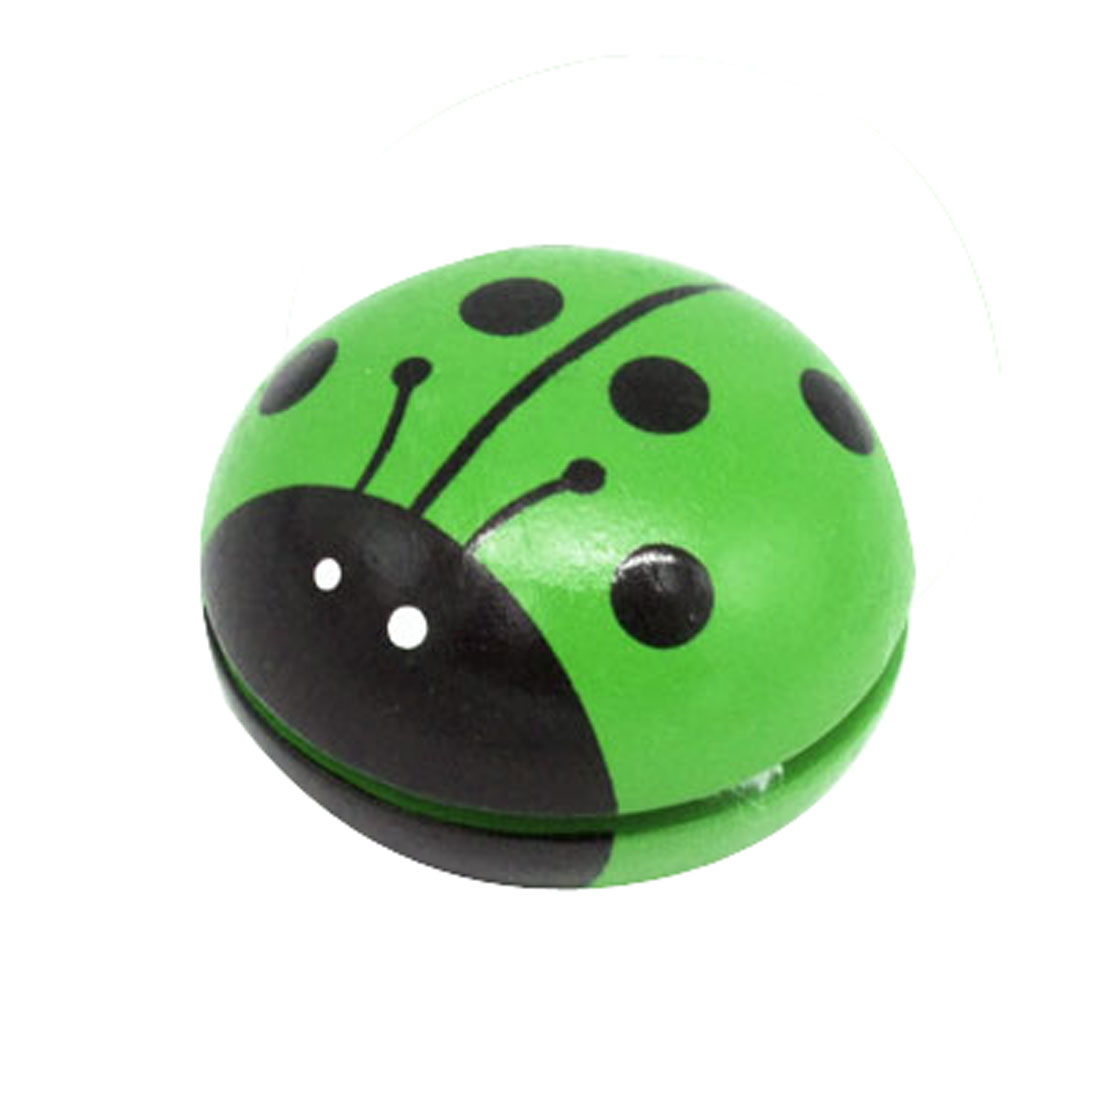 Novelty Ladybird Shaped Yo-Yo Kids Wooden Toy Gift